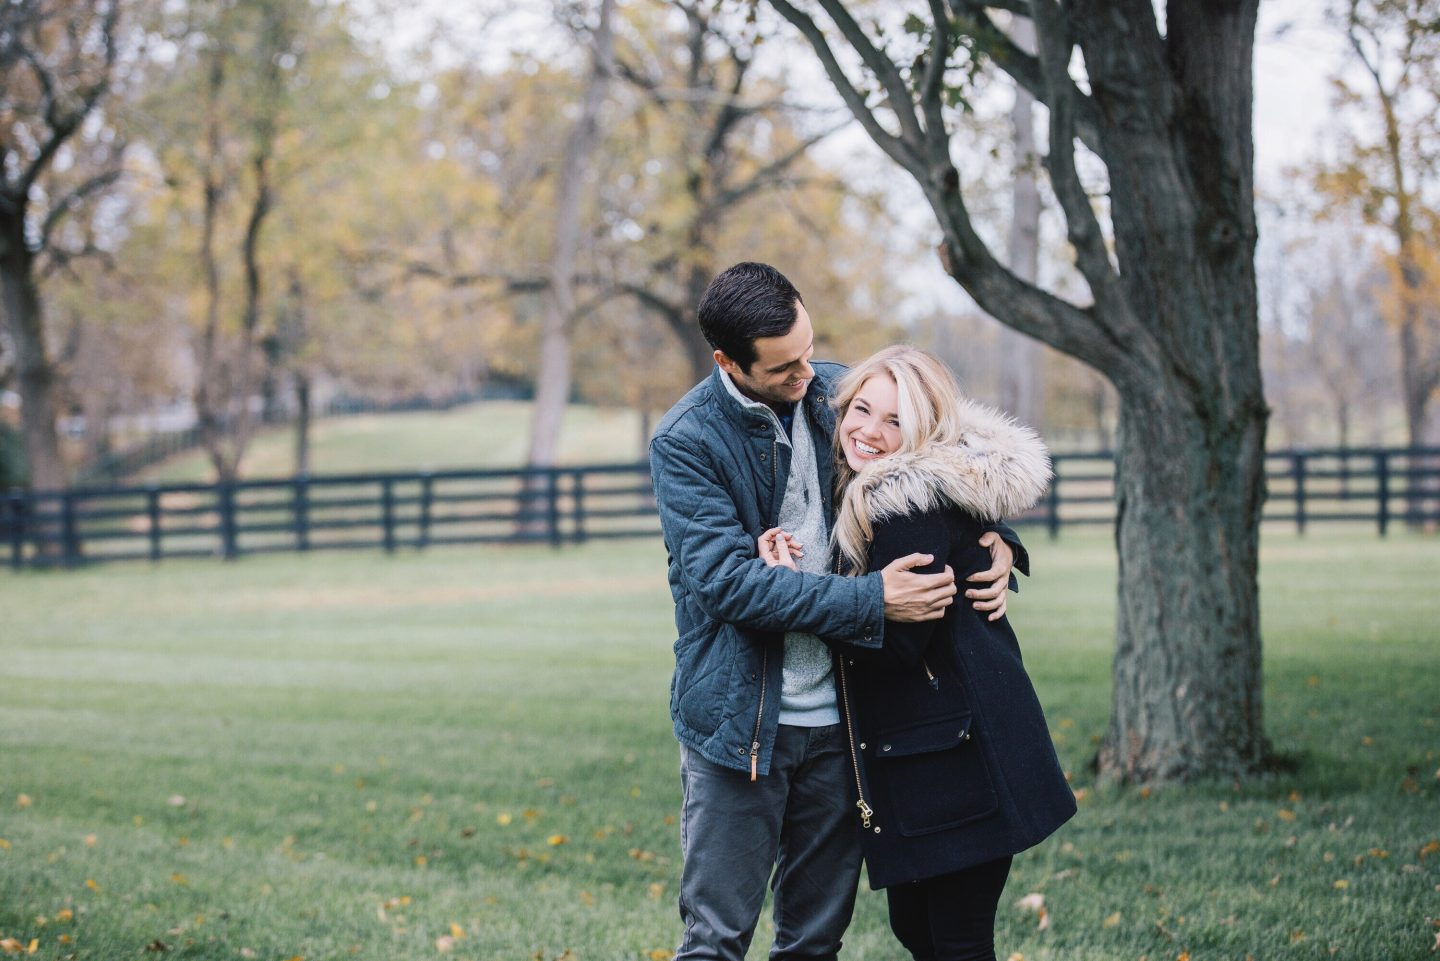 I keep forgetting to share this with you all. Back at the end of October I had the joy and privilege of shooting a surprise proposal and engagement for the sweetest couple, Maddie Potter and Sam Duff. Maddie is a life and style blogger and she blogged about the proposal on her blog and I want you all to check it out (click on the link below). Also take a few extra minutes and look thru the rest of her blog, you won't regret it.  http://ottestyle.com/2017/11/08/introducing-wedding-wednesday/